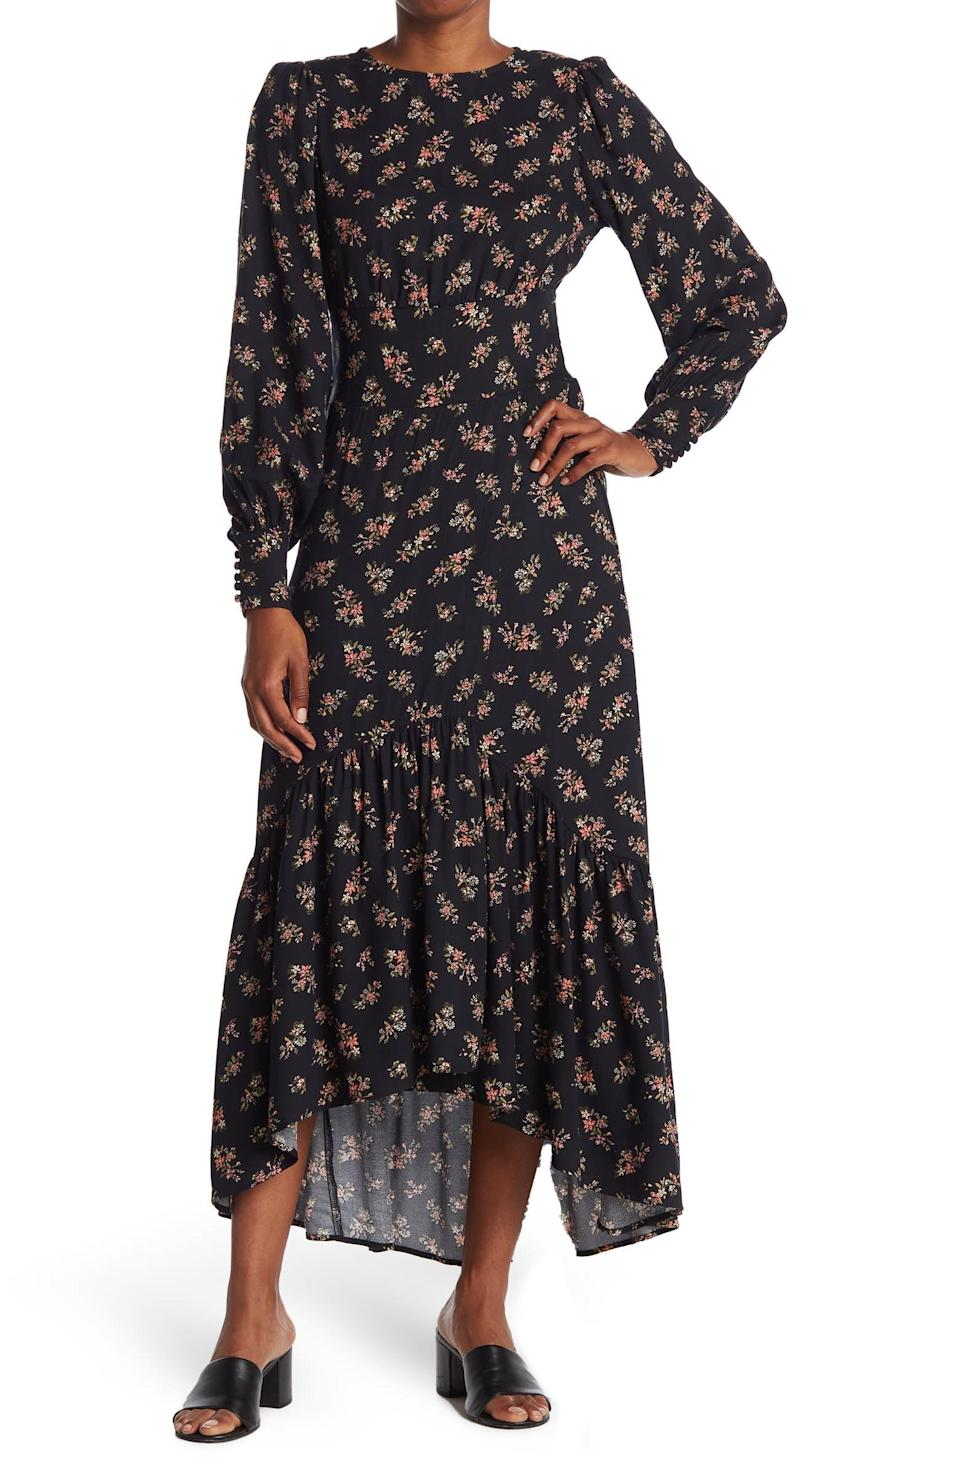 """<h2>AFRM Gilda Back Cutout Dress</h2><br>Though you can't tell from the front view, the backside of this long-sleeve maxi has a gorgeous <a href=""""https://www.refinery29.com/en-us/best-cut-out-dresses"""" rel=""""nofollow noopener"""" target=""""_blank"""" data-ylk=""""slk:cut-out"""" class=""""link rapid-noclick-resp"""">cut-out</a> that will stun all those around you.<br><br><strong>The Hype:</strong> 4.6 out of 5 stars and 12 reviews on <a href=""""https://www.nordstromrack.com/s/afrm-gilda-back-cutout-dress/6099761"""" rel=""""nofollow noopener"""" target=""""_blank"""" data-ylk=""""slk:NordstromRack.com"""" class=""""link rapid-noclick-resp"""">NordstromRack.com</a><br><br><strong>What They're Saying: </strong>""""Wore this to a party and got tons of compliments! Very flattering!"""" — cami, NordstromRack.com reviewer<br><br><strong>AFRM</strong> Gilda Back Cutout Dress, $, available at <a href=""""https://go.skimresources.com/?id=30283X879131&url=https%3A%2F%2Fwww.nordstromrack.com%2Fs%2Fafrm-gilda-back-cutout-dress%2F6099761"""" rel=""""nofollow noopener"""" target=""""_blank"""" data-ylk=""""slk:Nordstrom Rack"""" class=""""link rapid-noclick-resp"""">Nordstrom Rack</a>"""